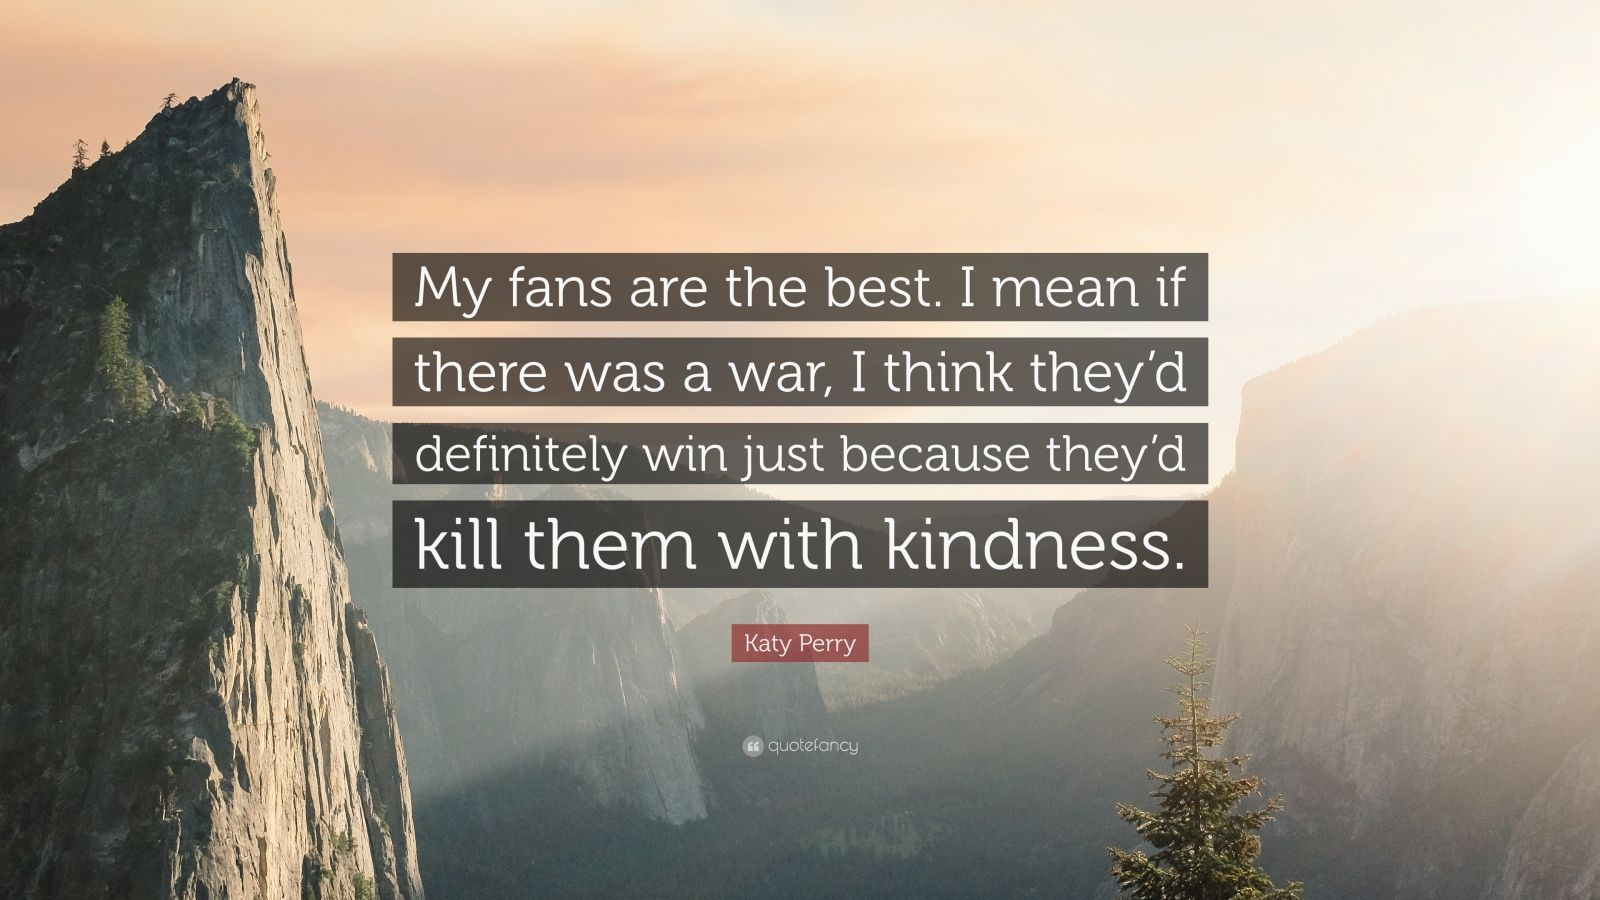 """Katy Perry Quote: """"My fans are the best. I mean if there was a war, I think they'd definitely win just because they'd kill them with kindness."""""""